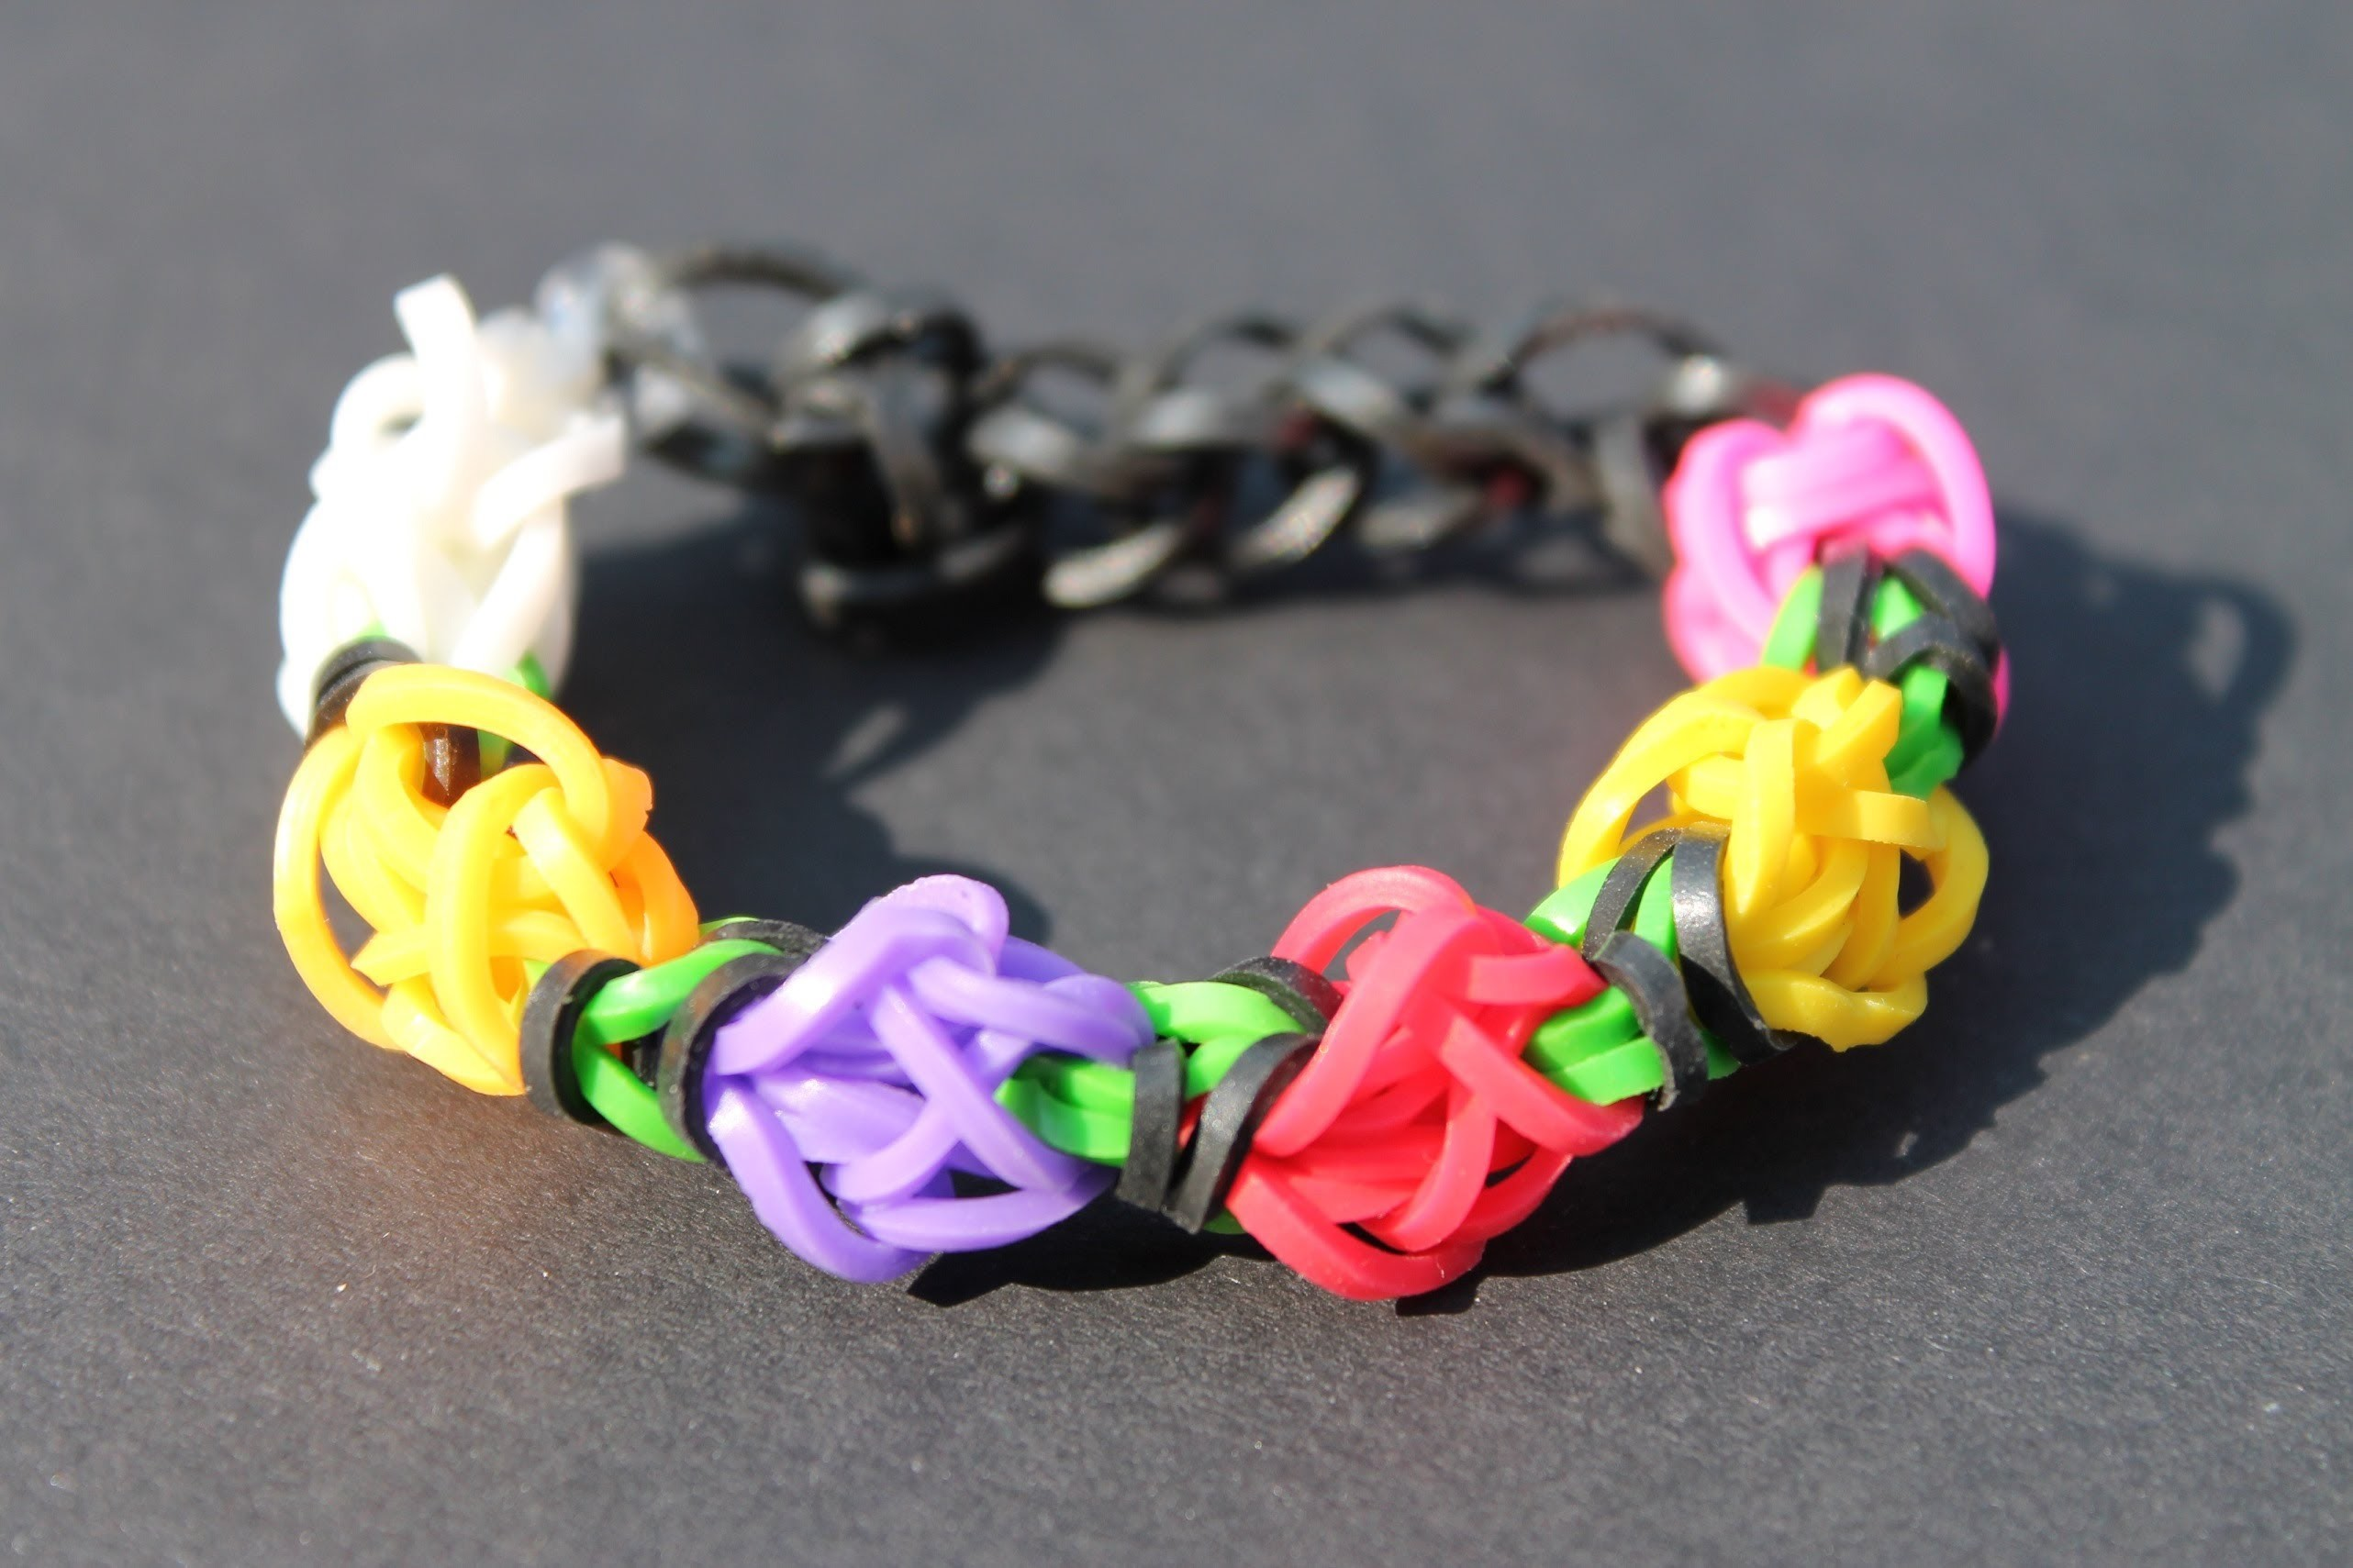 Rainbow Loom Nederlands, Tulip Tower, armband, bracelet